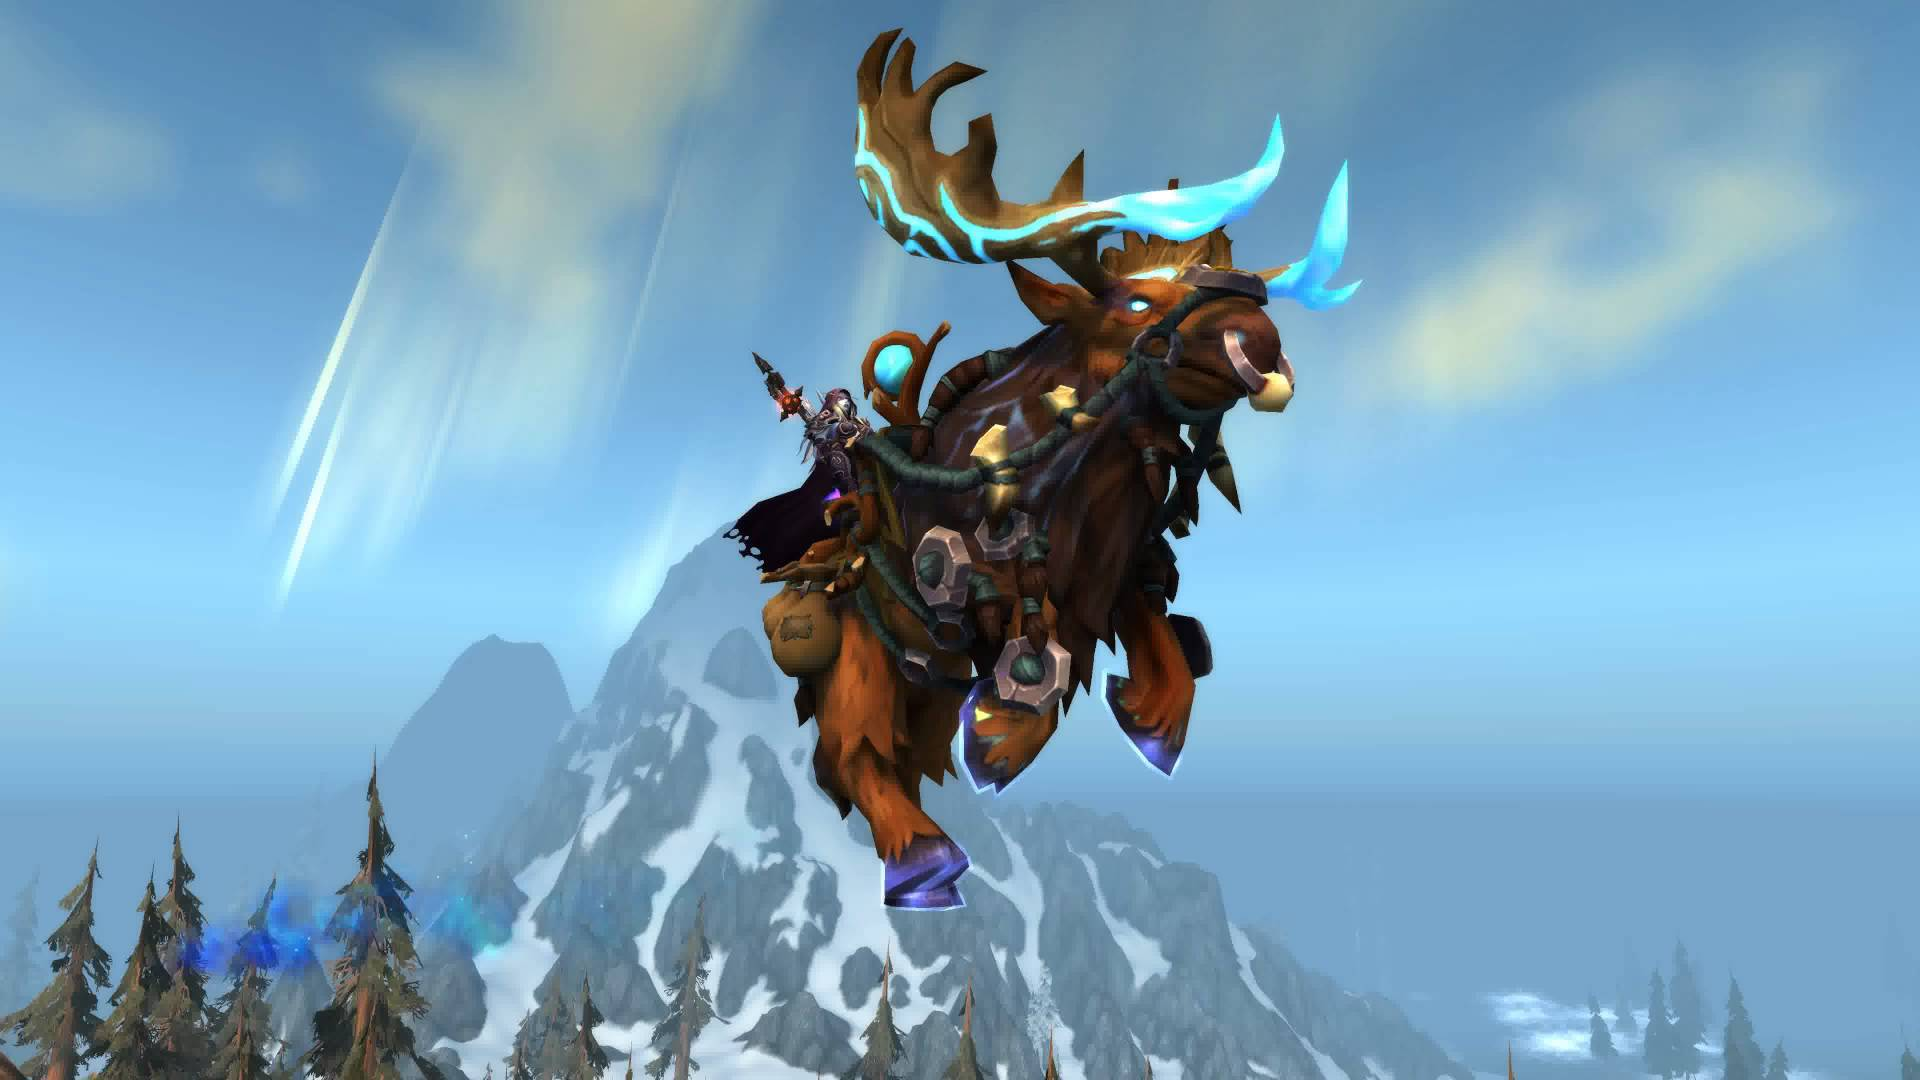 A band of Robin Hoods will help you get WoW's rare moose for free, and some raiders aren't happy